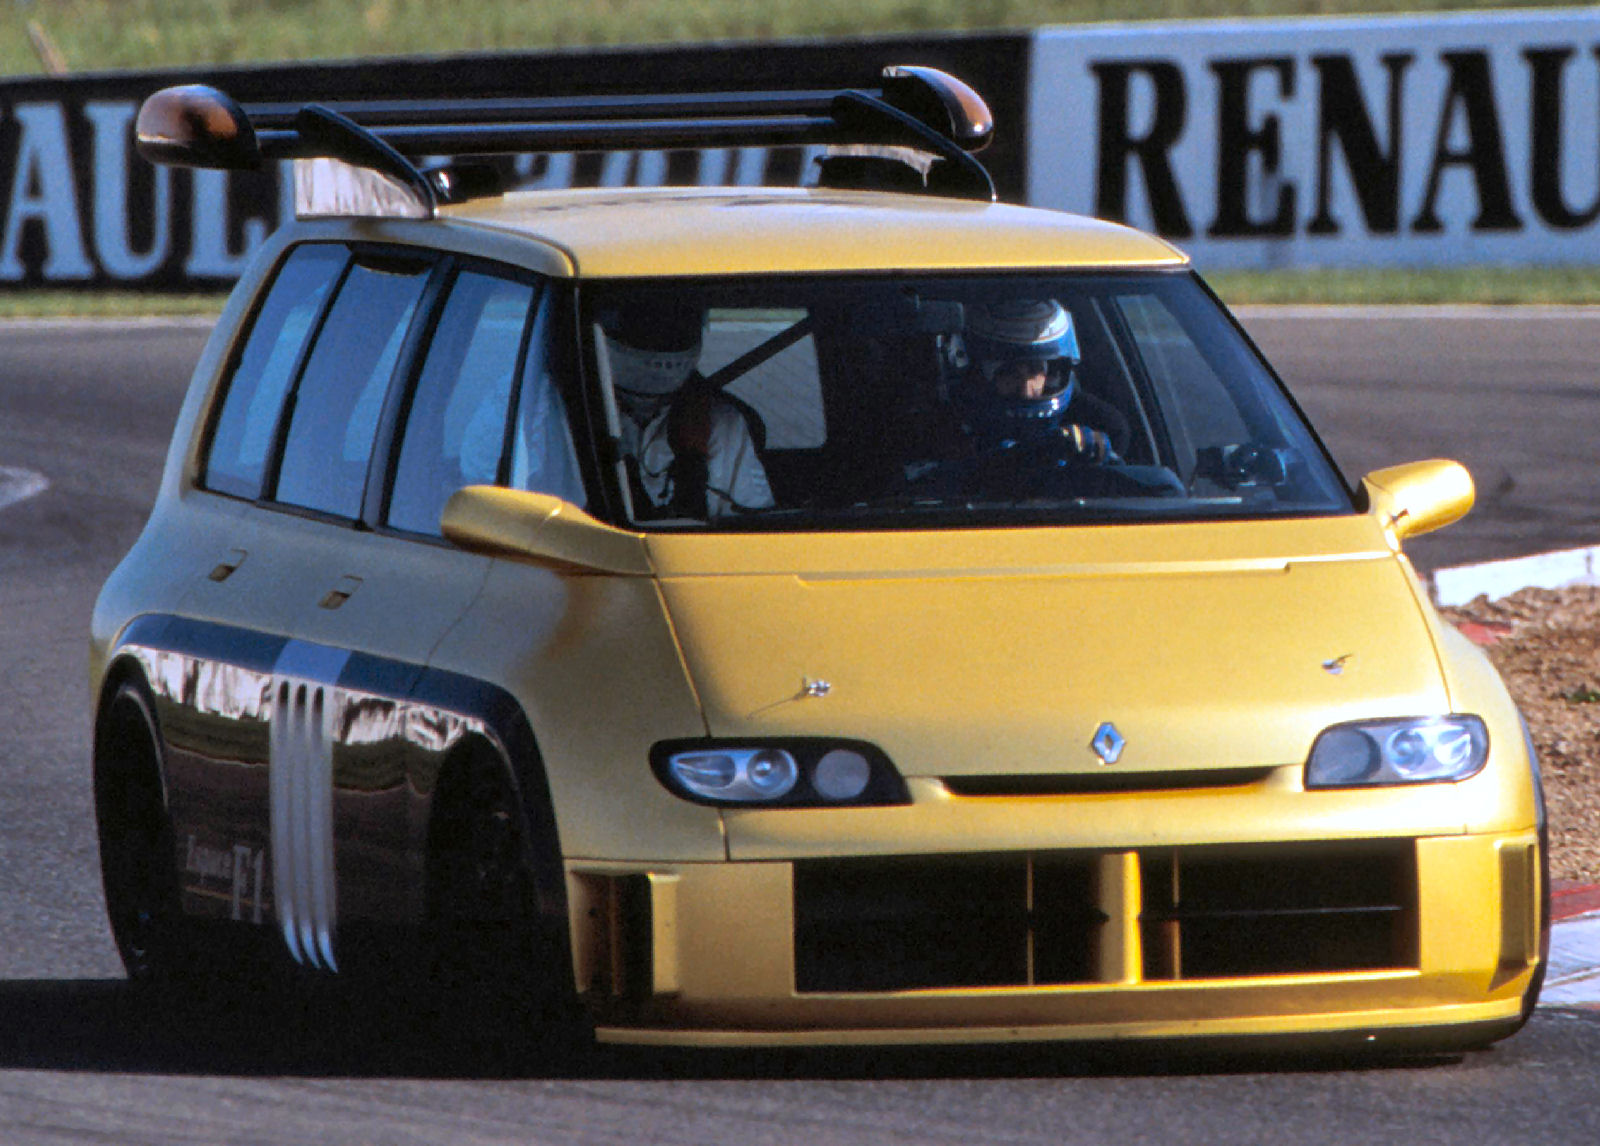 jaune prost renaultespacef1 magny-cours 1995